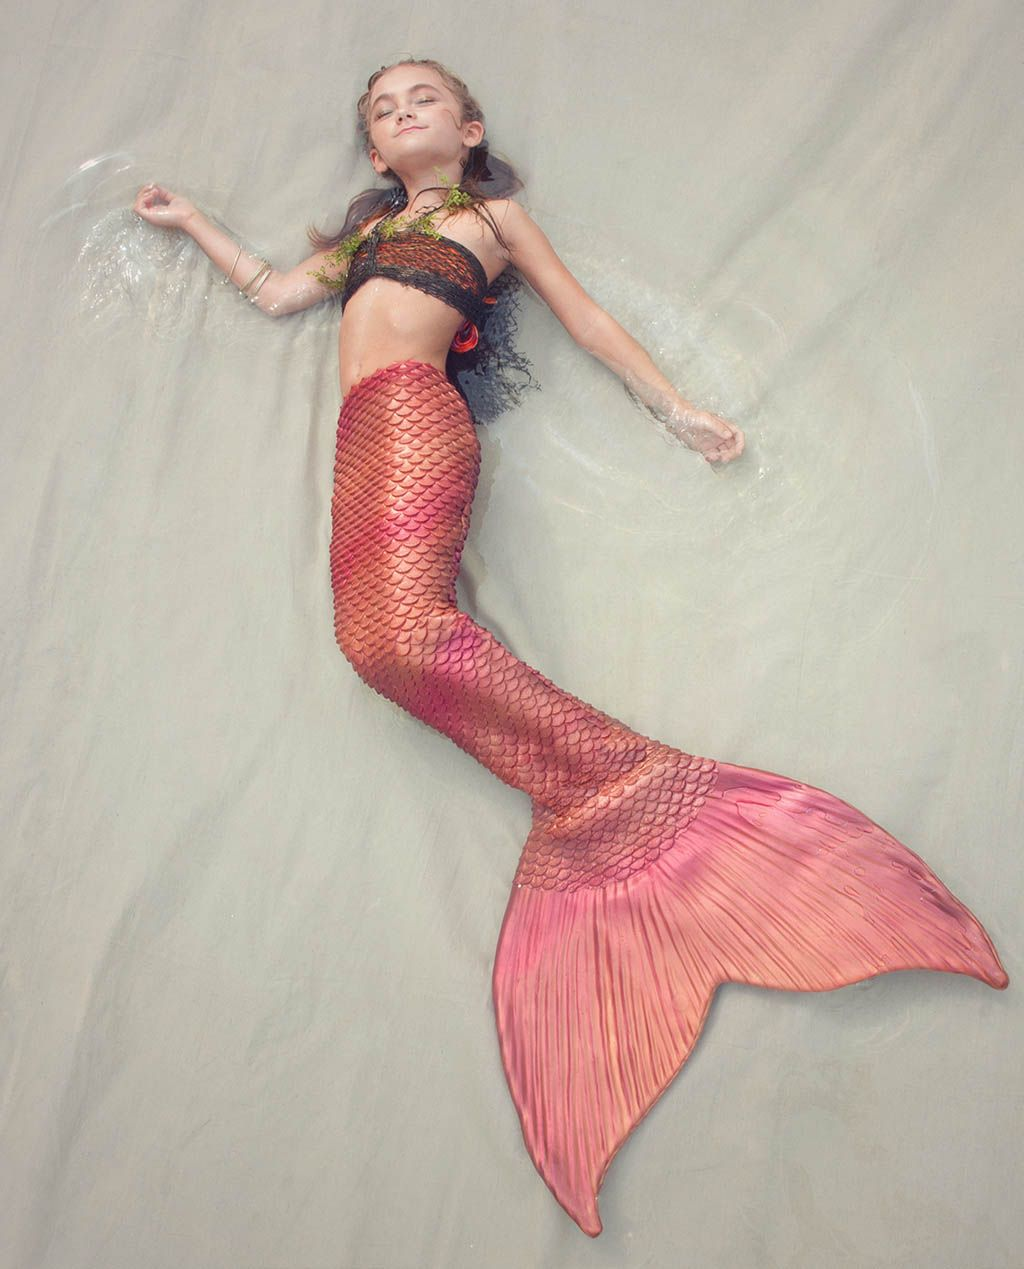 Silicone mermaid tail ❤️                                                                                                                                                                                 More